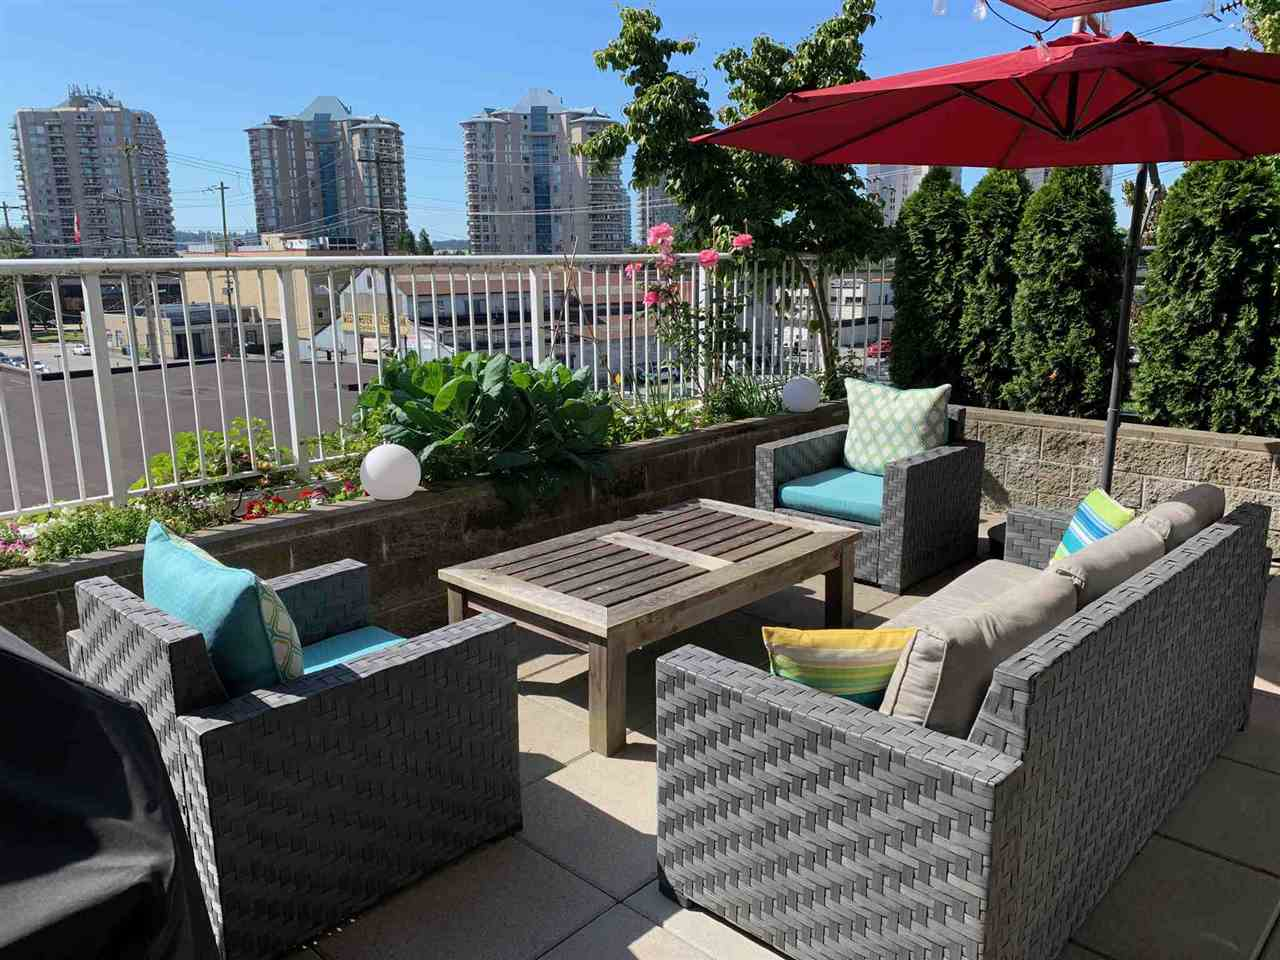 207 135 ELEVENTH STREET - Uptown NW Apartment/Condo for sale, 2 Bedrooms (R2499911)